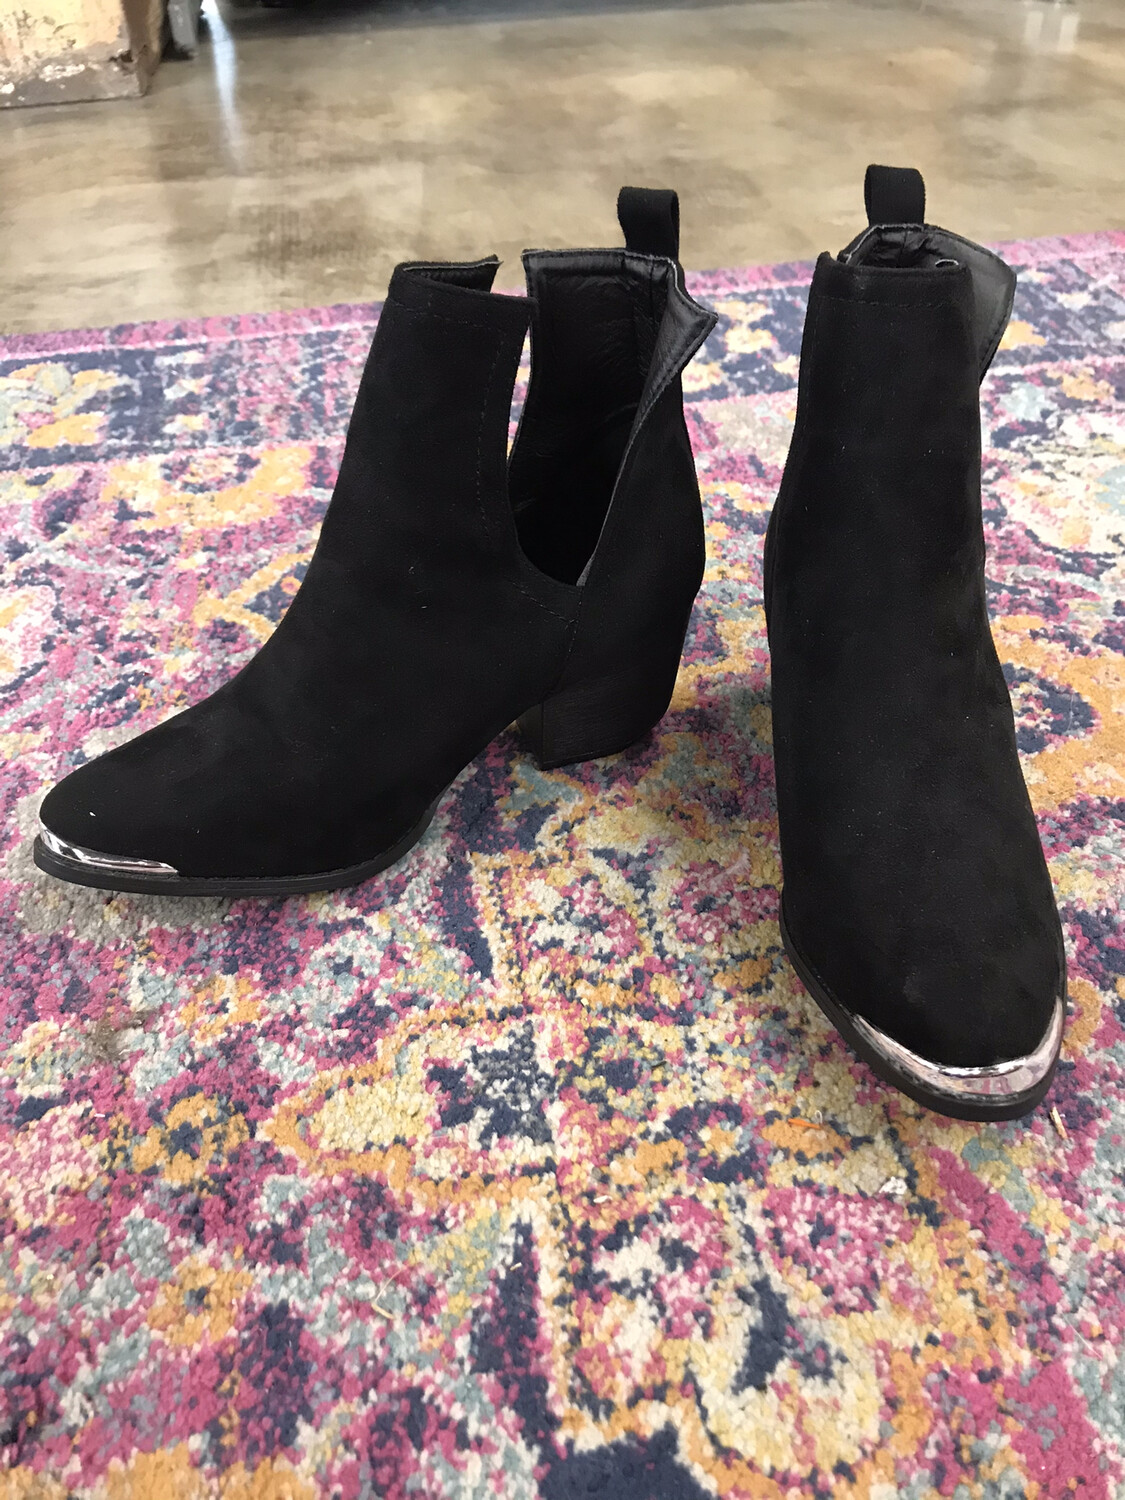 J. Adams - Black Booties with Silver Toe - Size 9